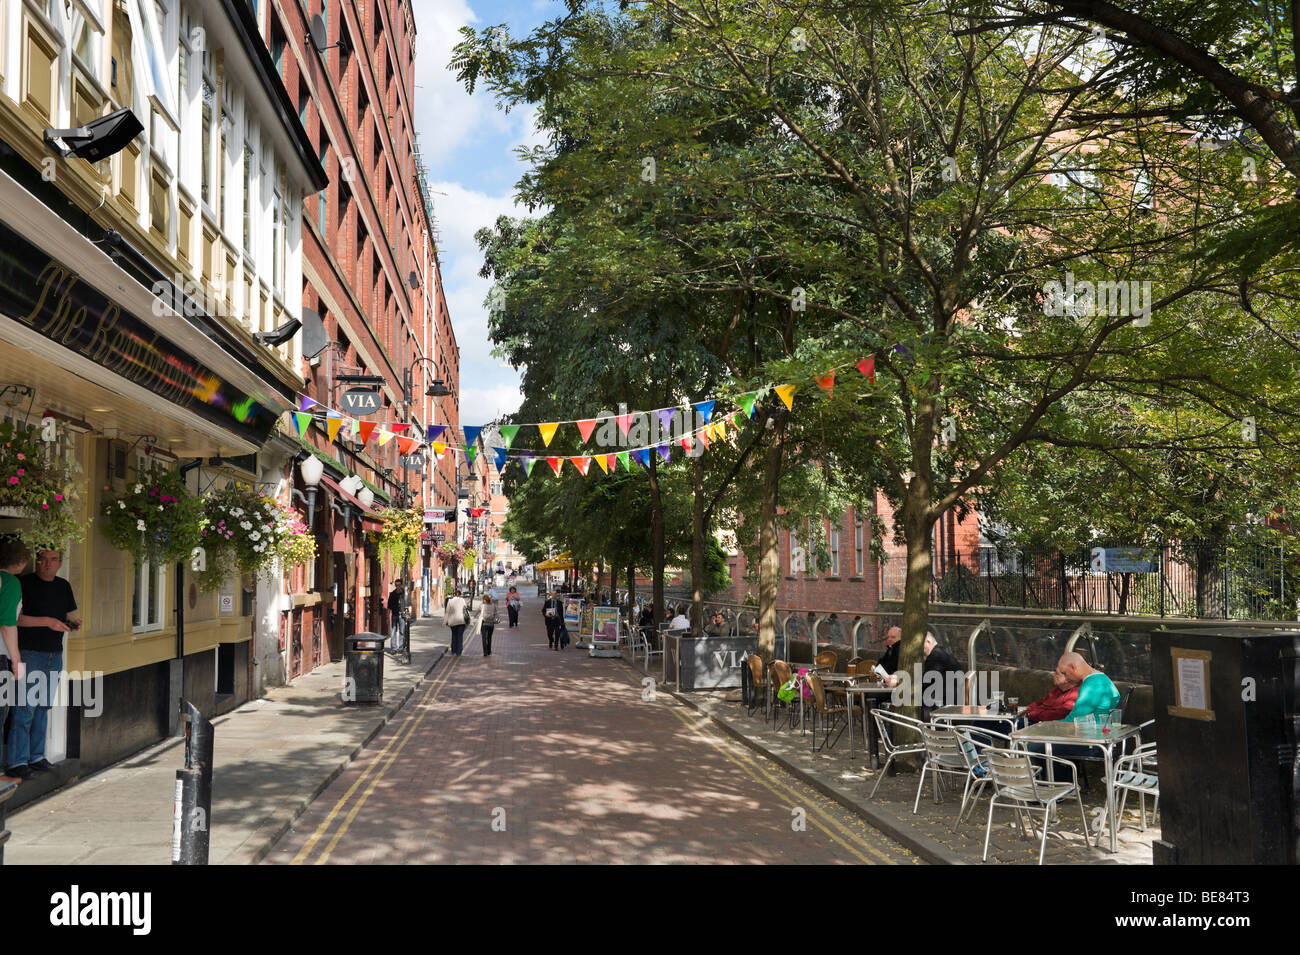 Pubs, Bars and Clubs along Canal Street in the Gay Village, City Centre, Manchester, England - Stock Image